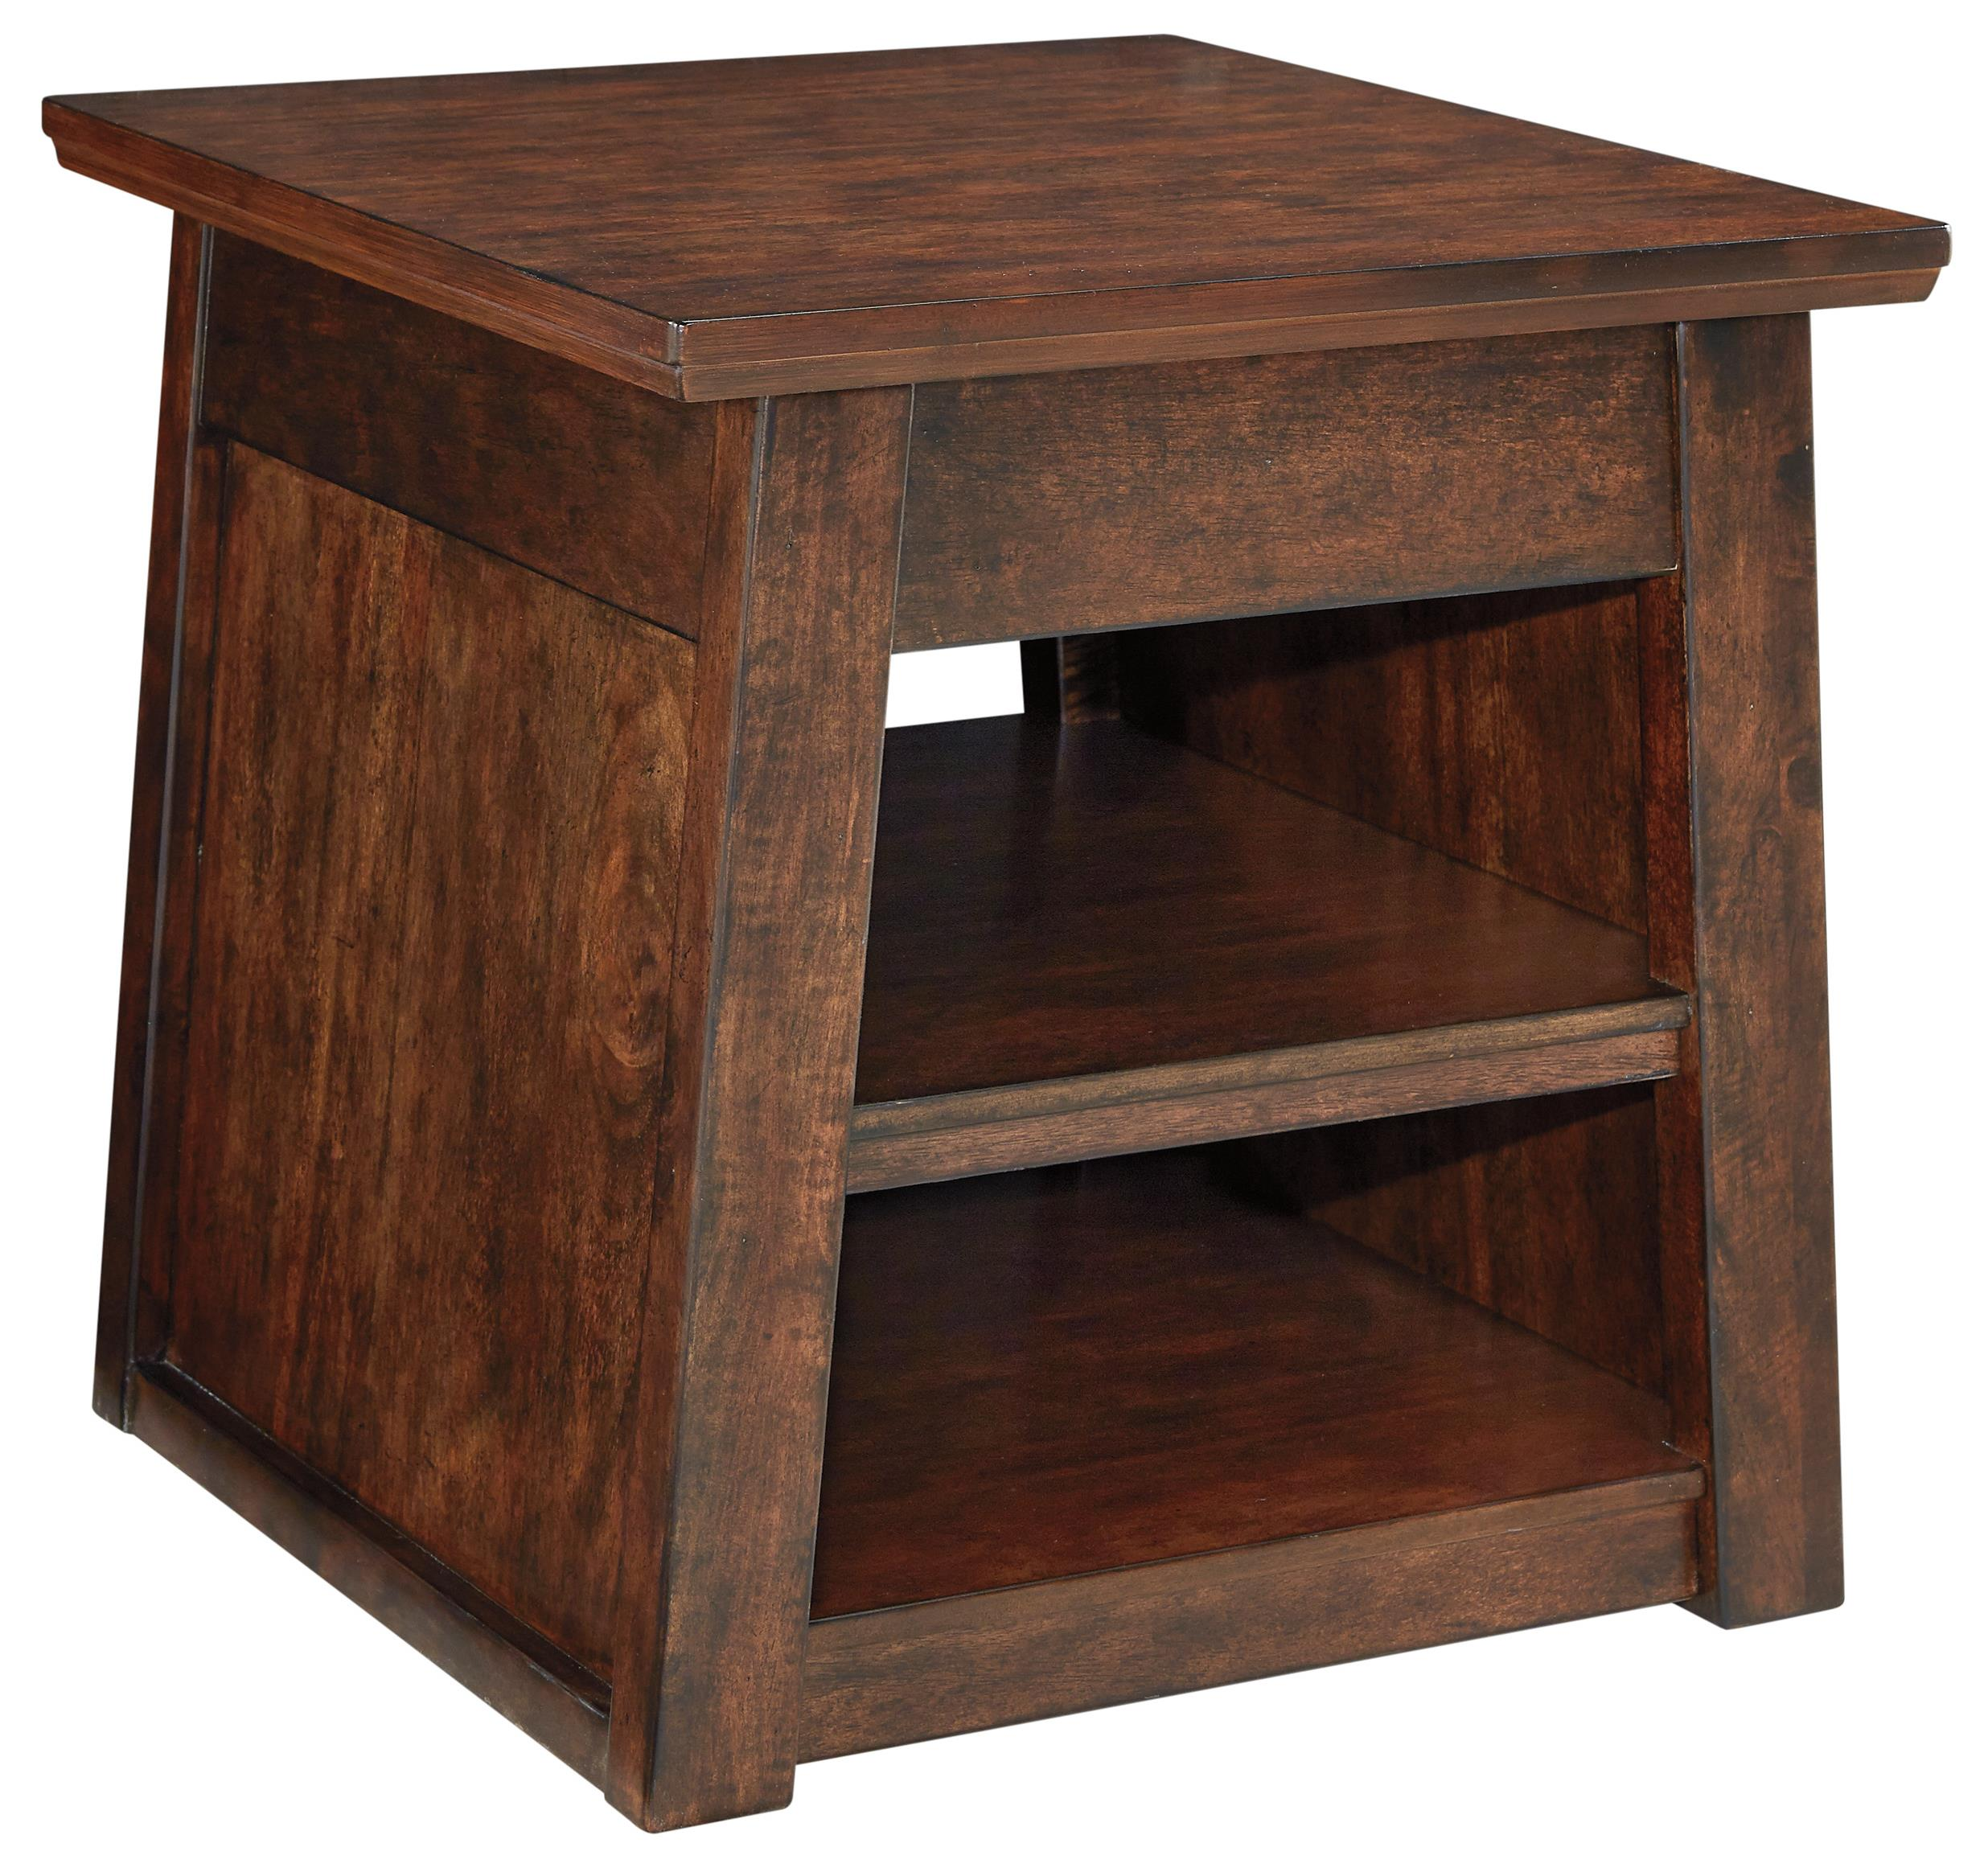 Signature Design by Ashley Harpan Rectangular End Table - Item Number: T797-3